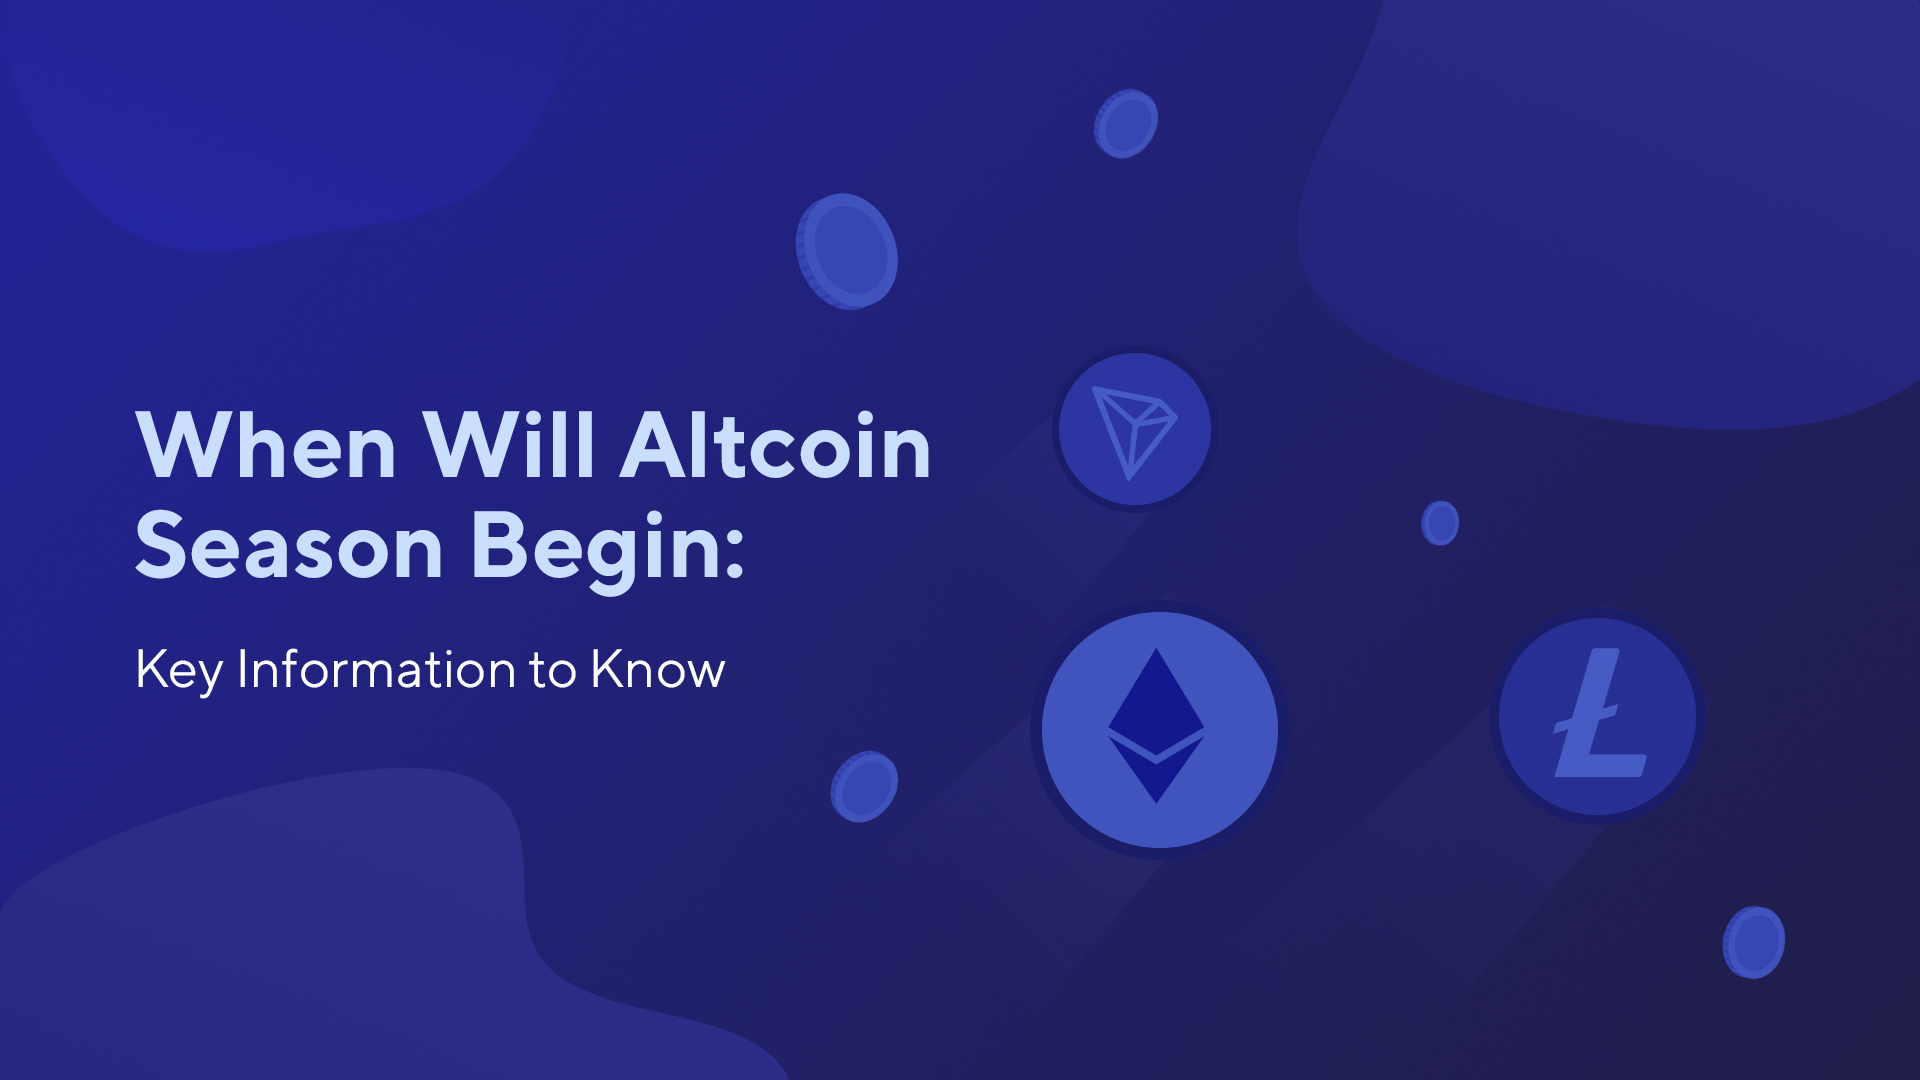 When Will Altcoin Season Begin: Key Information to Know